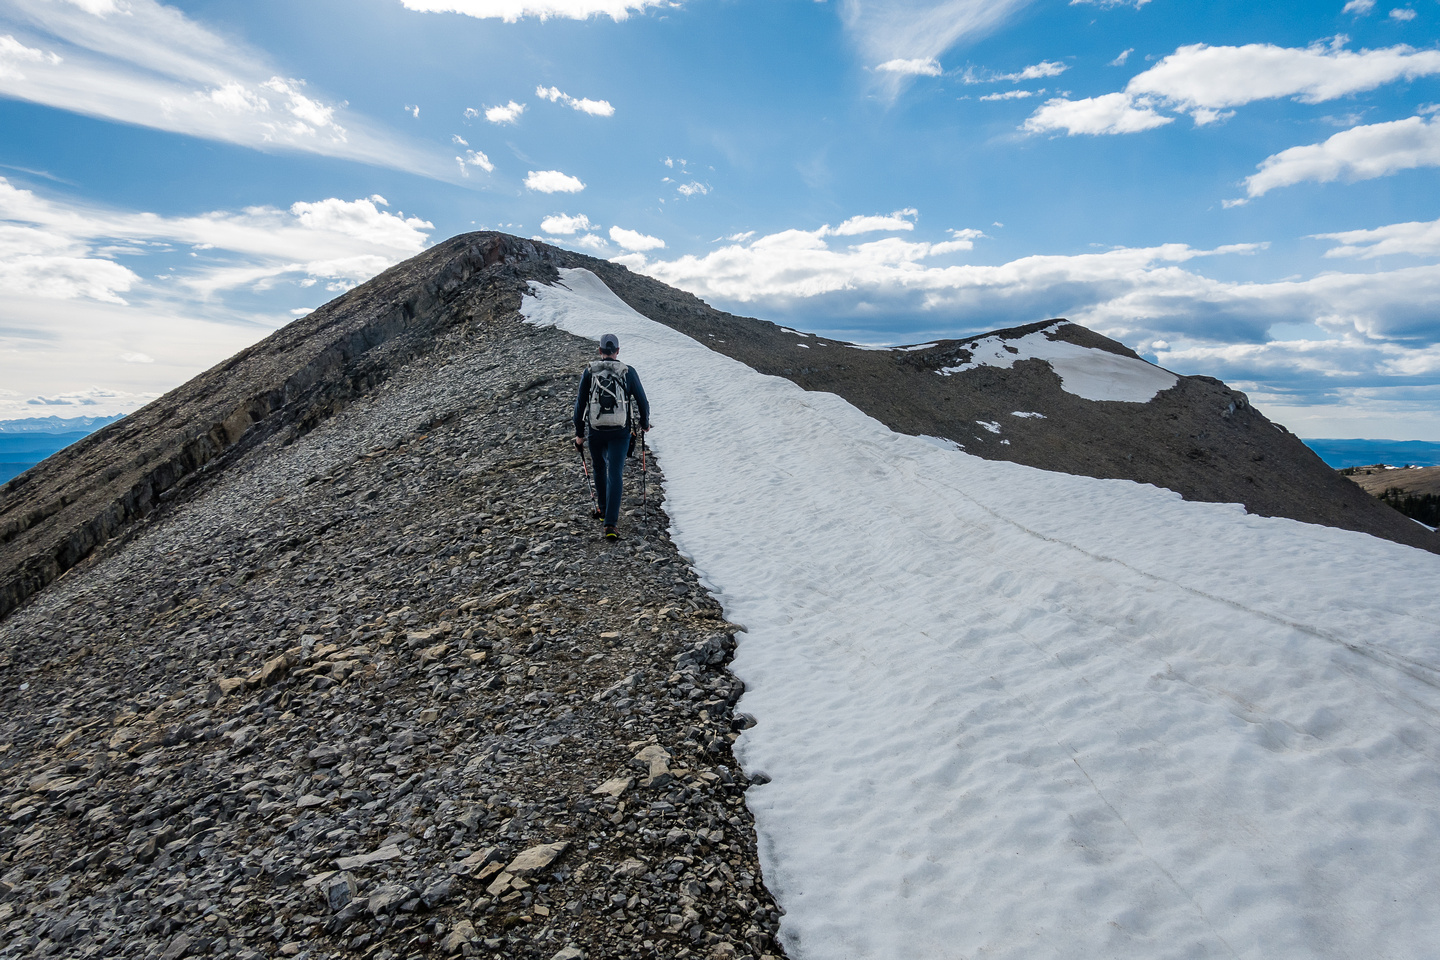 Hiking to the NW summit.